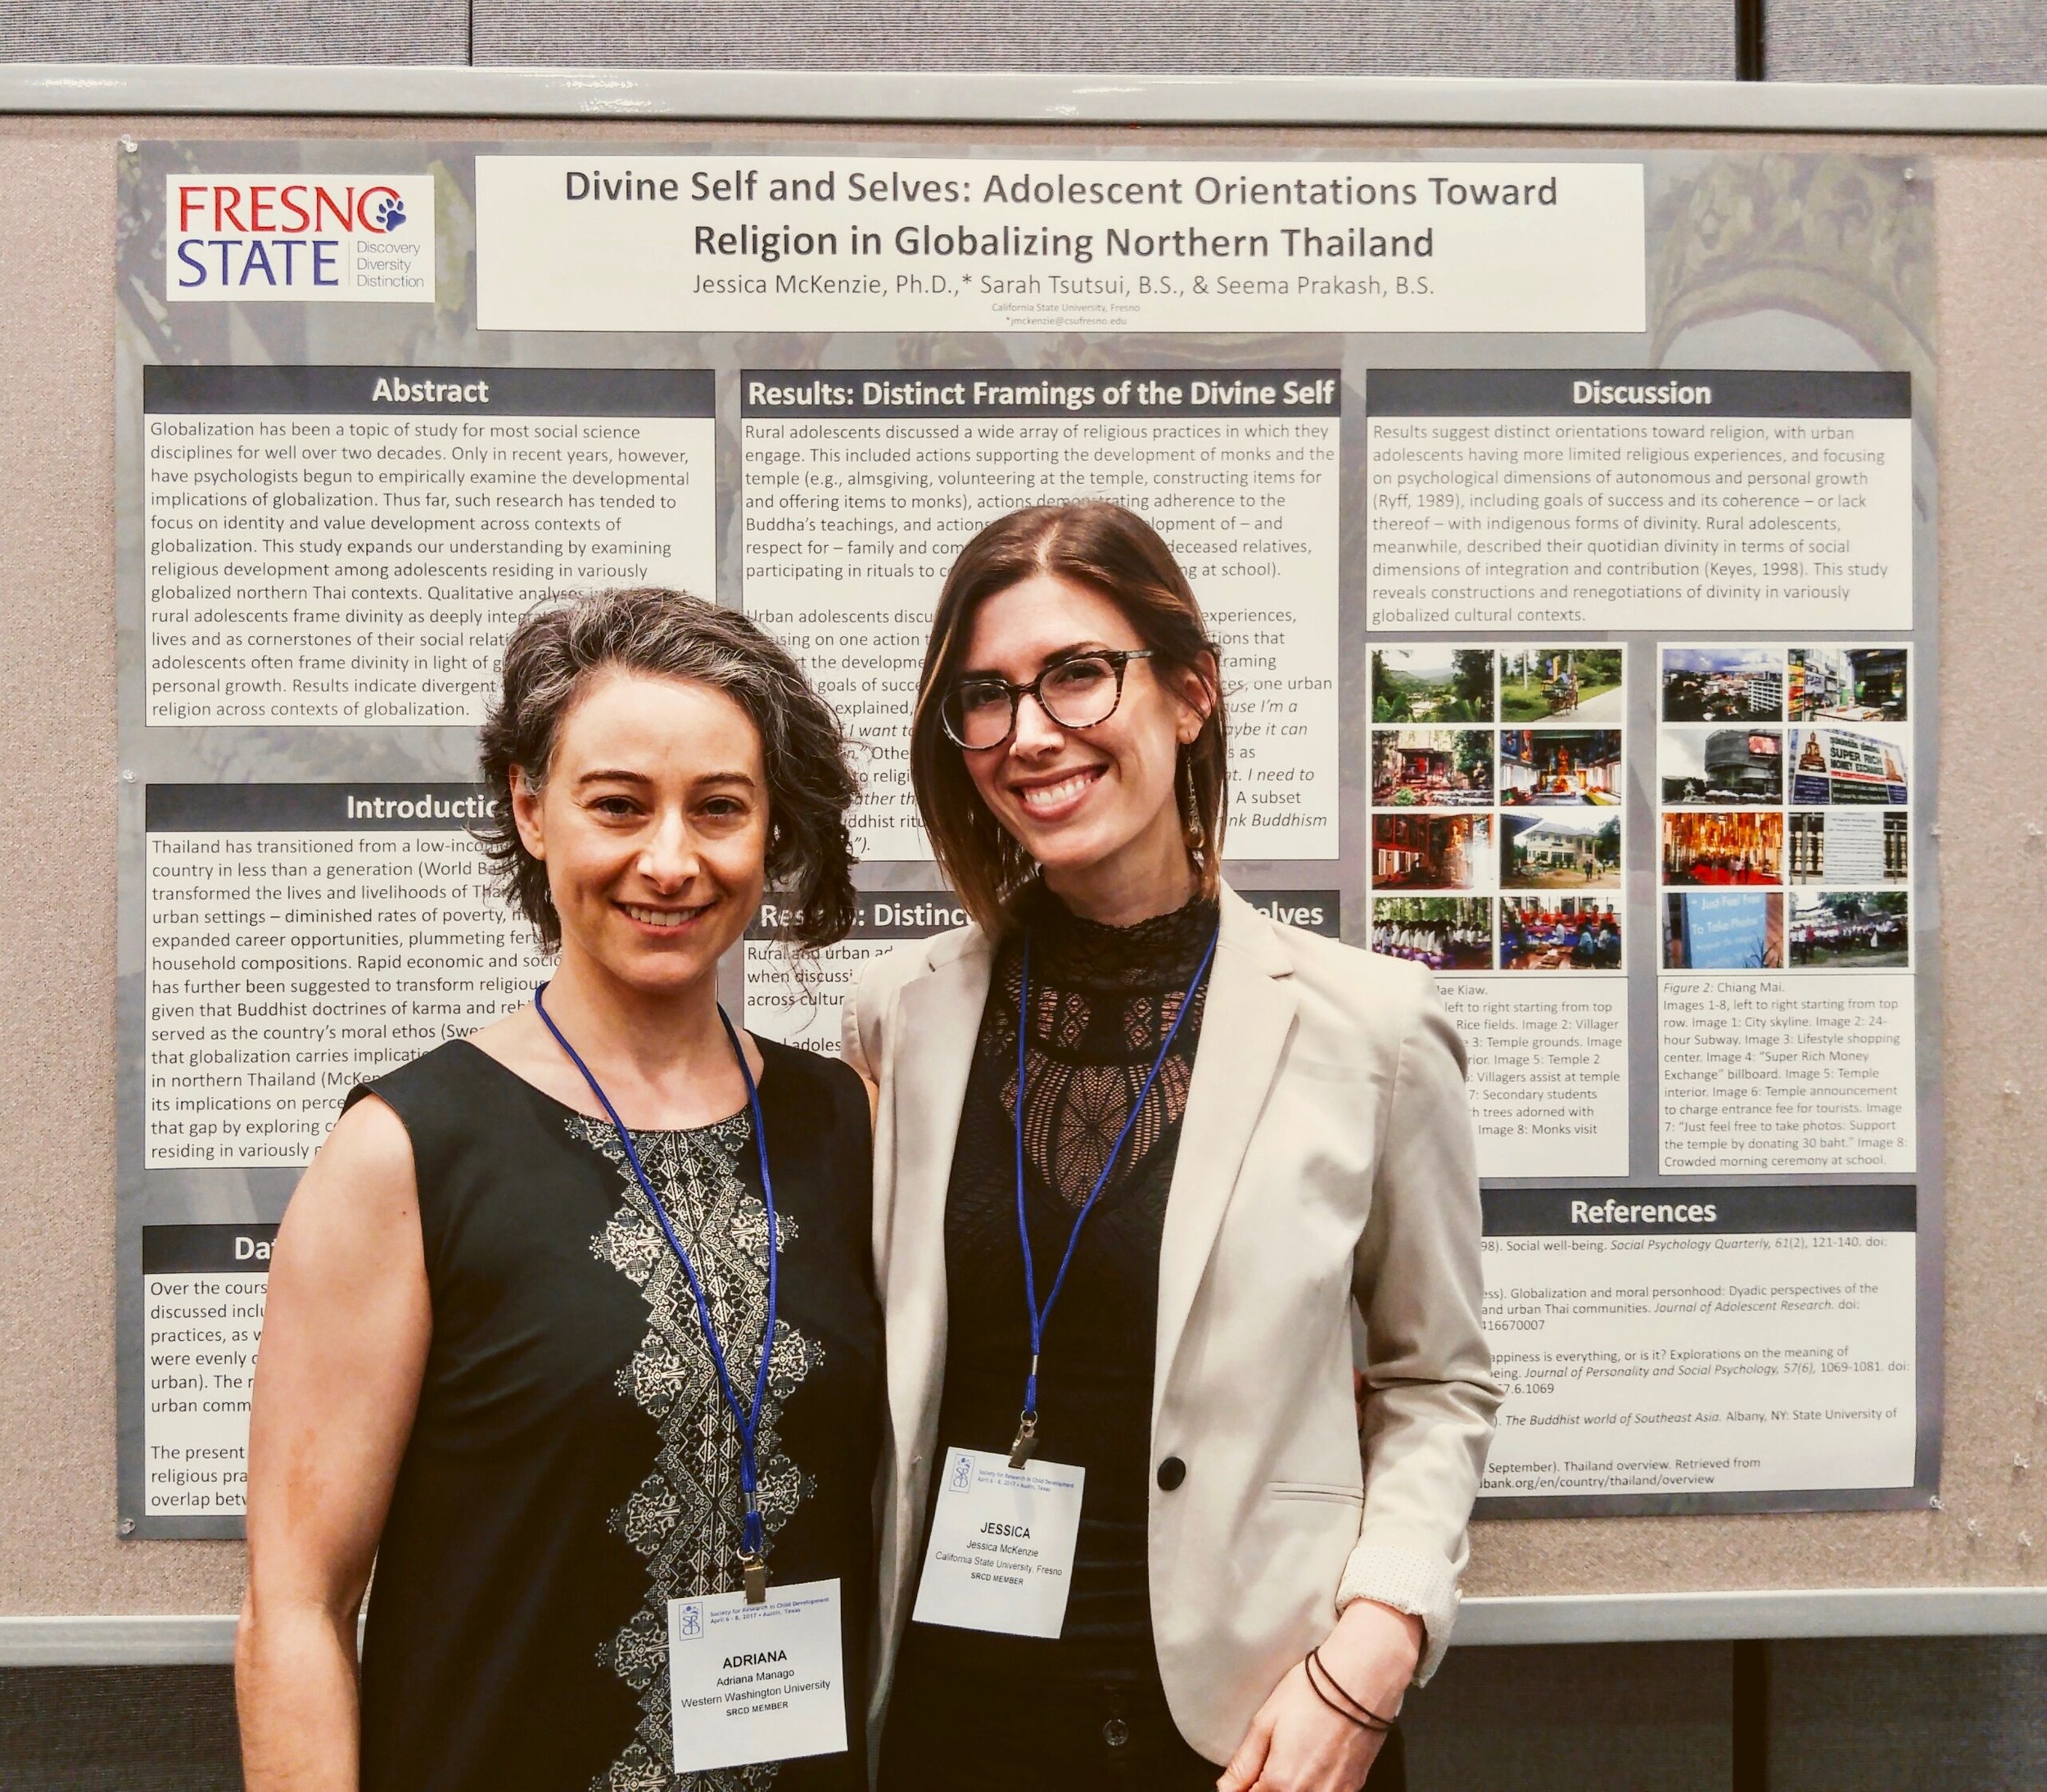 Dr. Adriana Manago (UC Santa Cruz) and Dr. Jessica McKenzie at The Upsides and Downsides of Globalization and Remote Acculturation for the Well-Being of Youth in the Majority World symposium